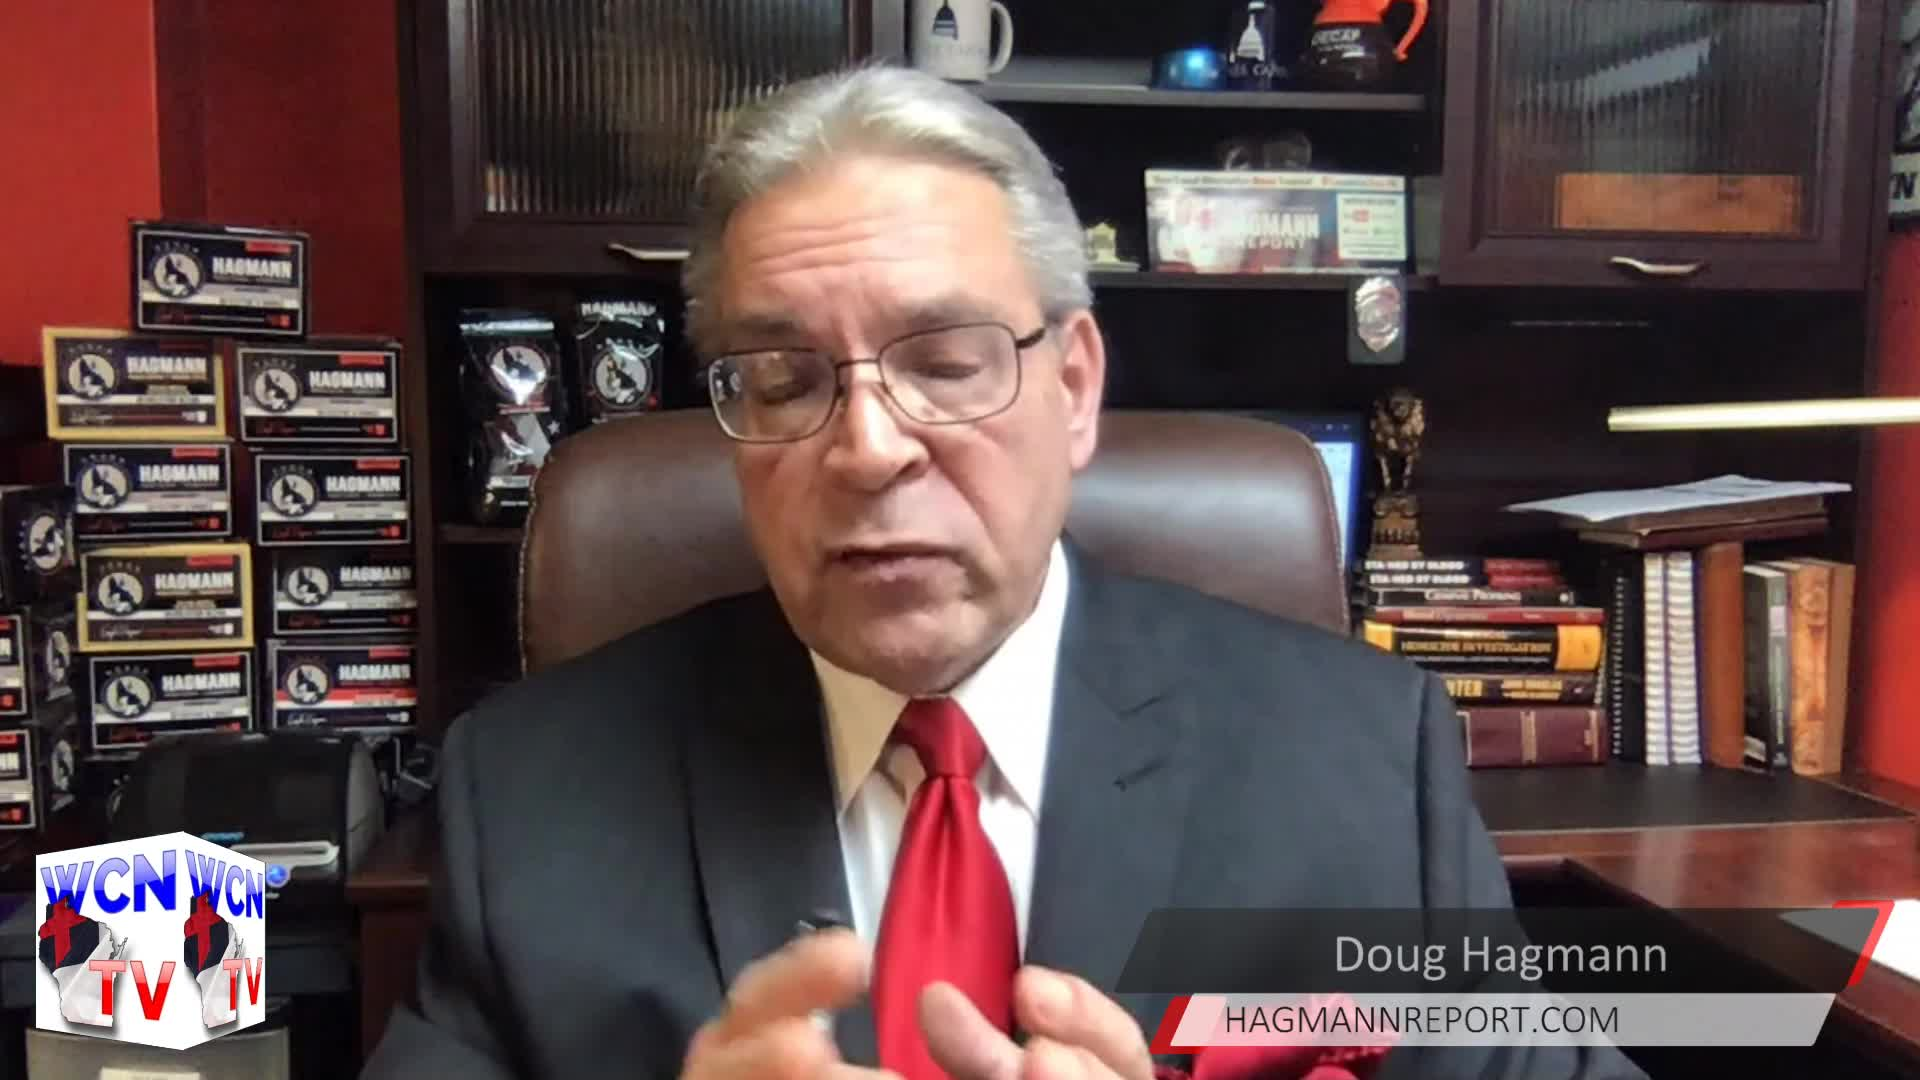 WCN-TV - November 4, 2020 - Rob Pue with Guest Doug Hagmann